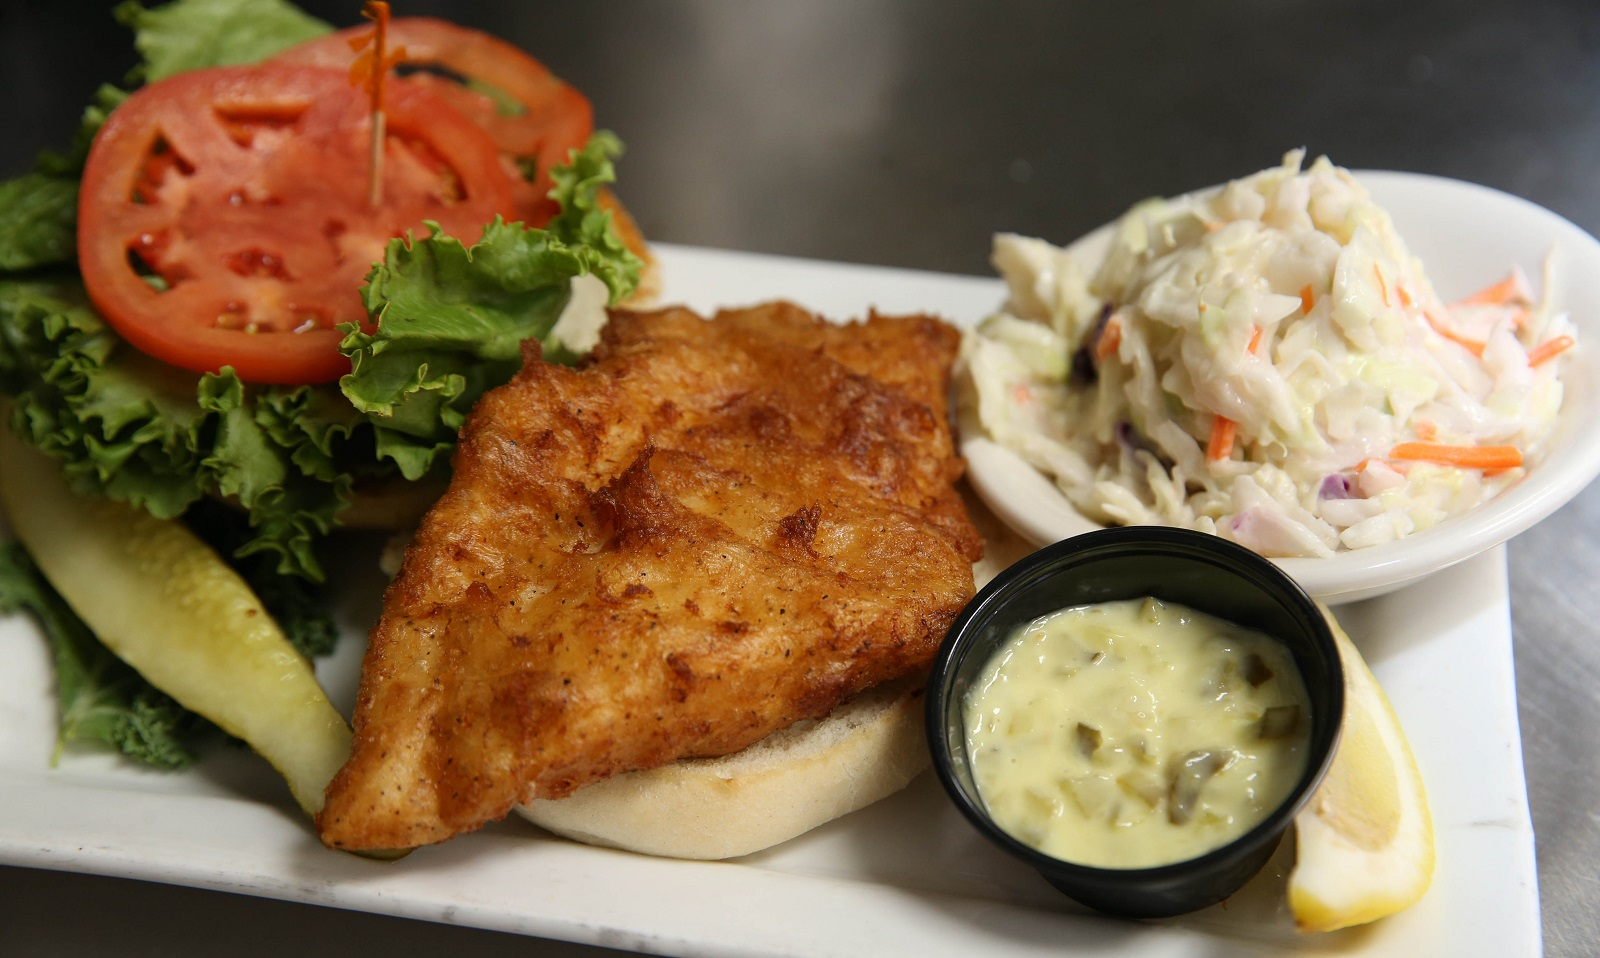 French Pub's fish sandwich with coleslaw and tartar sauce. (Sharon Cantillon/Buffalo News)